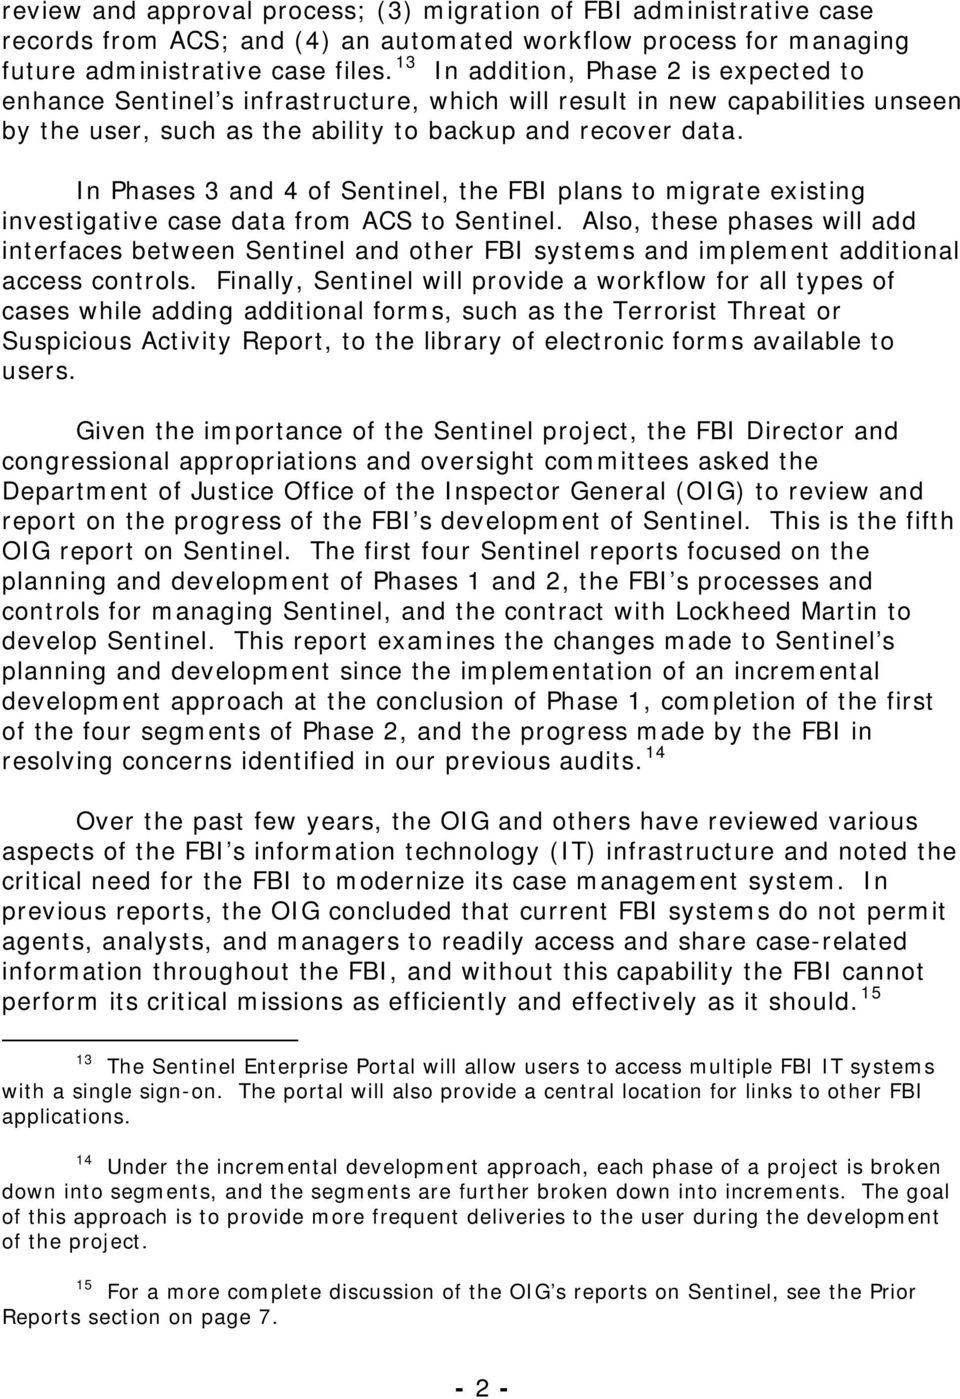 In Phases 3 and 4 of Sentinel, the FBI plans to migrate existing investigative case data from ACS to Sentinel.